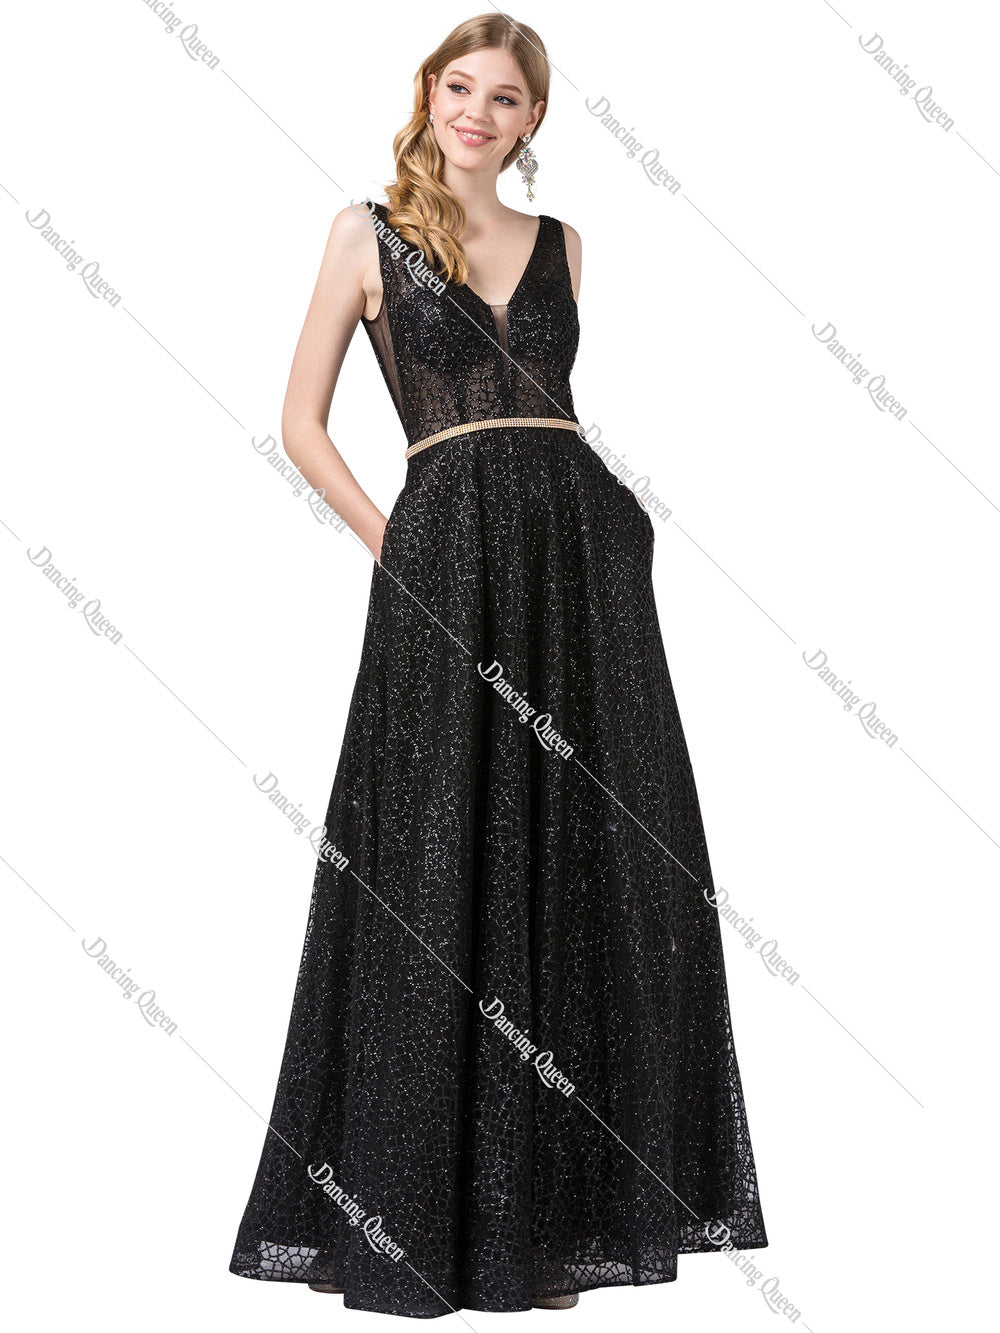 Dancing Queen DQ 2593 - Long Glittery A-Line Formal Gown with Plunging V-Neck & Rhinestone Embellished Accents - Diggz Prom